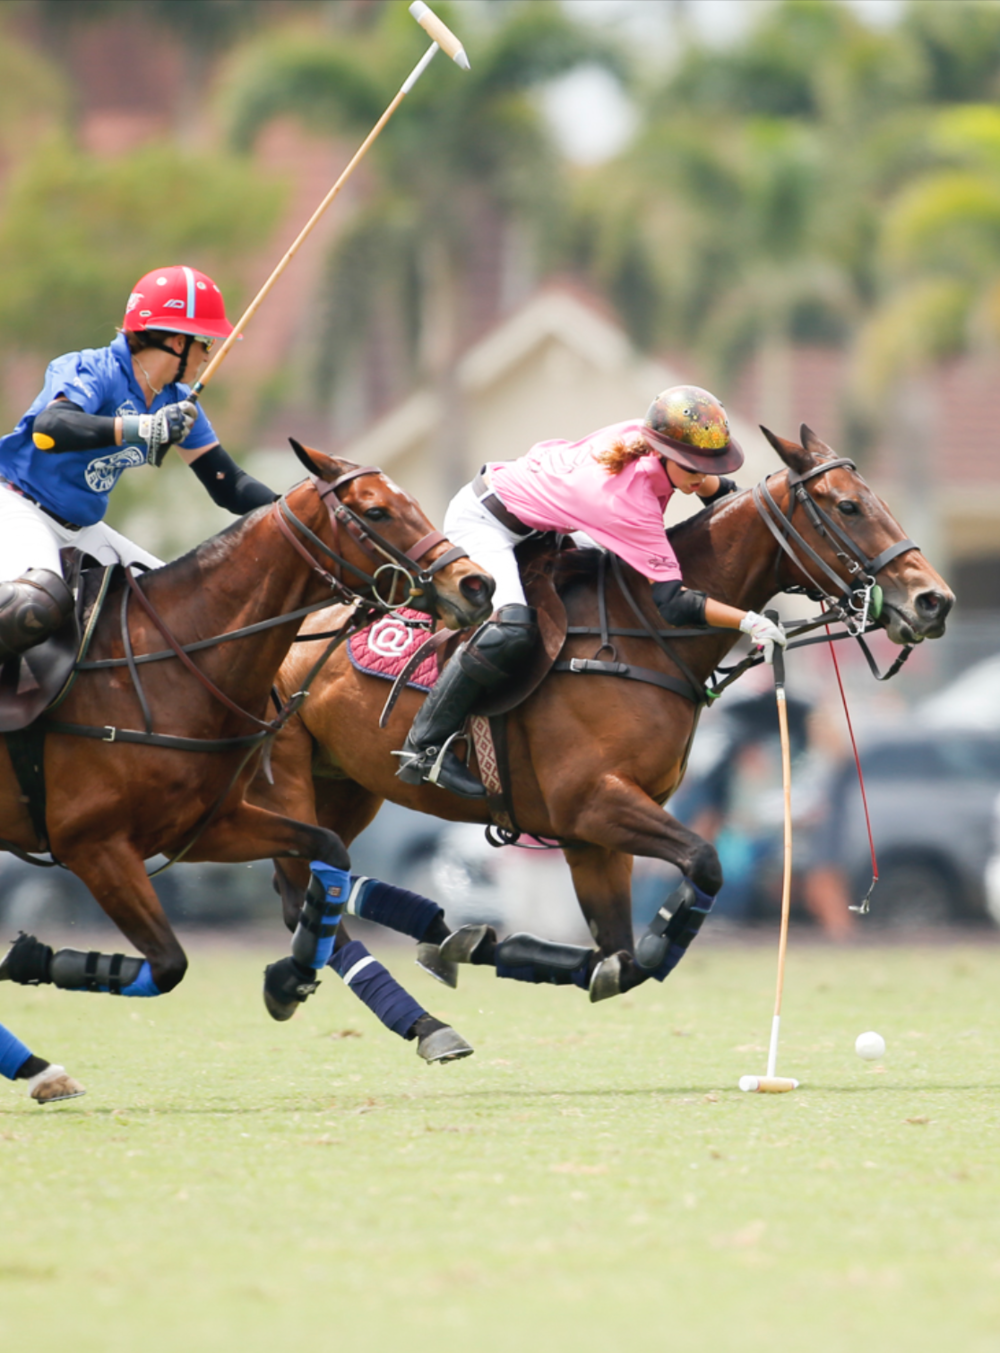 Built from the ground up - Created by the polo community itself, start-up funding comes from individual players and polo supporters. Once launched (Q4 2018), in-site advertising sales and sponsorship will support the network's ongoing maintenance and administration.- $40,000 start-up funds exclusively cover the hard costs of developing  WIPN's virtual headquarters – a website where players, umpires, and club administrators can create and publish their own content as well as connect with each other through a player search/sort and tournament calendar. WIPN is managed by an elected volunteer board.- Sustained by in-site advertising sales and sponsorships- Access is free or low-cost to any female player worldwide with a verifiable club affiliationSupport WIPN.   Give $25, $150, $5000 – for yourself and on behalf of a polo sister you've never met. It all helps us build a better polo community.